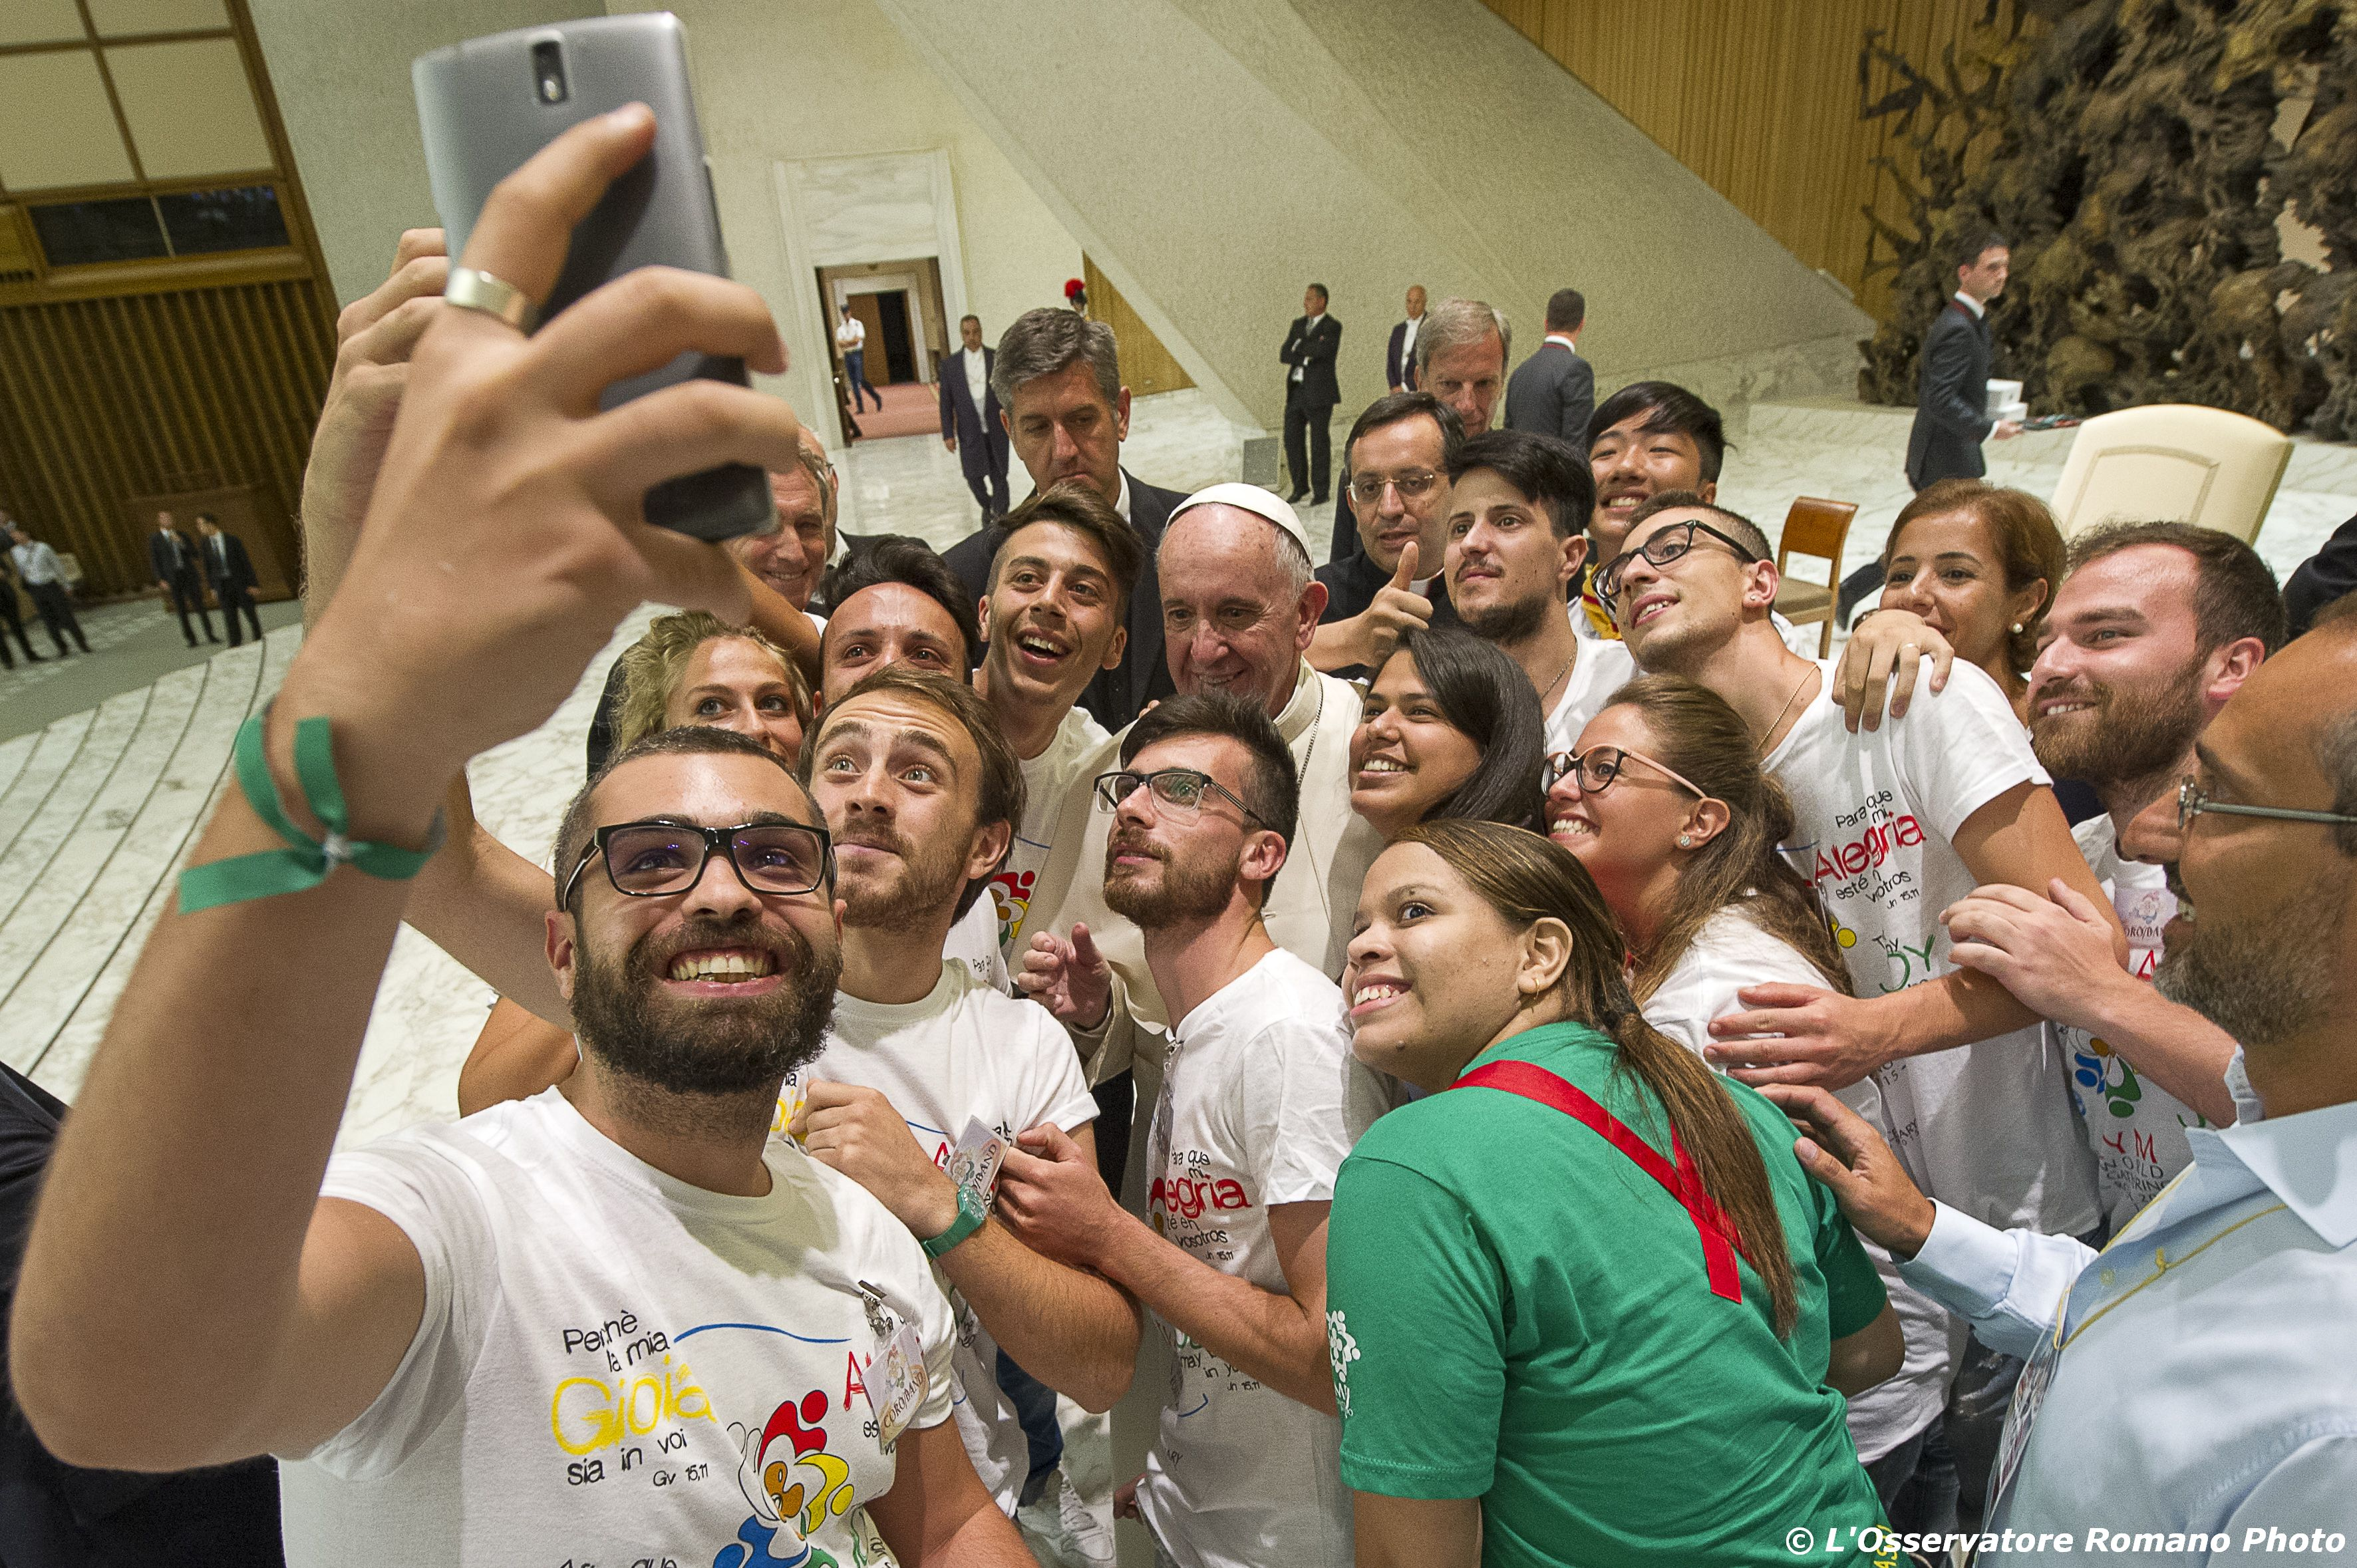 Pope Francis with members of the Eucharistic Youth Movement in the Paul VI Audience Hall